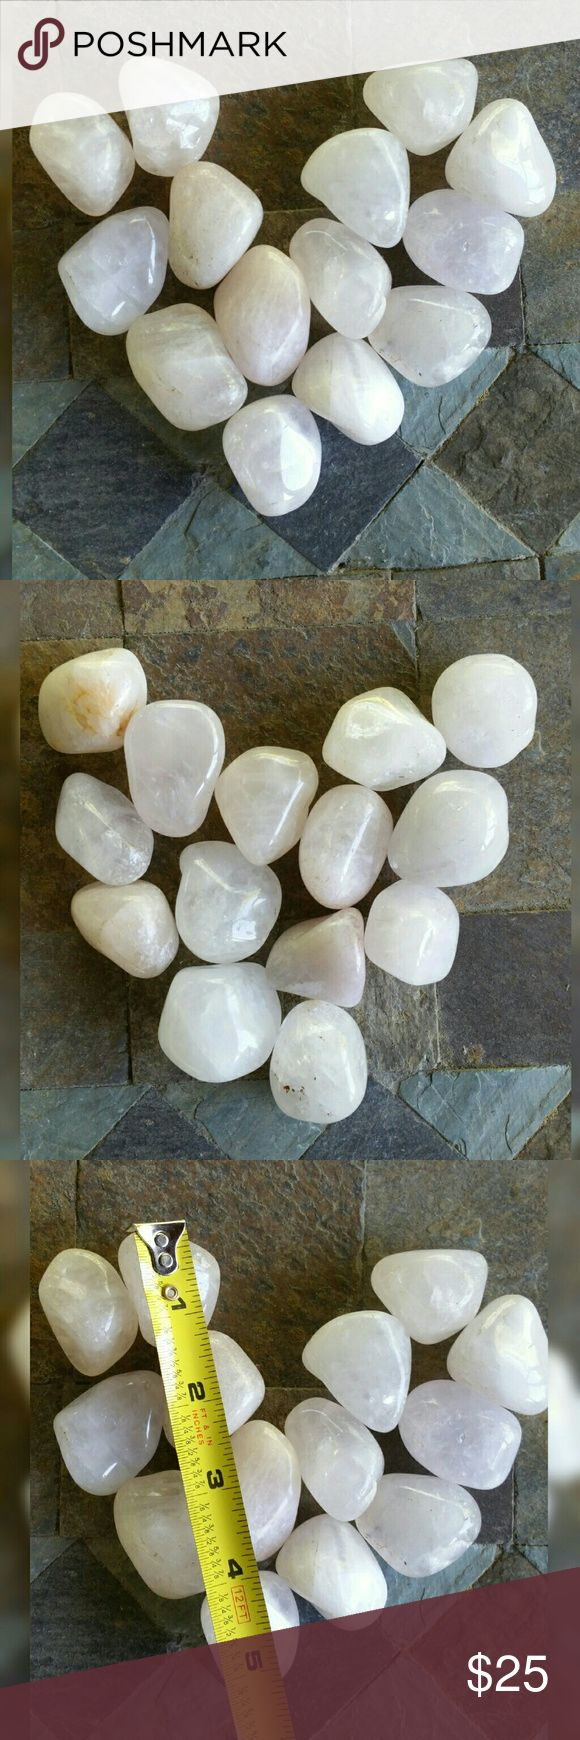 1 POUND CRYSTAL STONE TUMBLED PINK ROSE QUARTZ Lot of 1 pound natural tumbled crystal gemstones    PRICE IS FOR 1 POUND!  THERE ARE 2 POUNDS AVAILABLE    PLEASE ASK QUESTIONS BEFORE BUYING  SOLD AS IS  ALL ITEMS VIDEO TAPED BEFORE SHIPPING rawformcrystals Jewelry